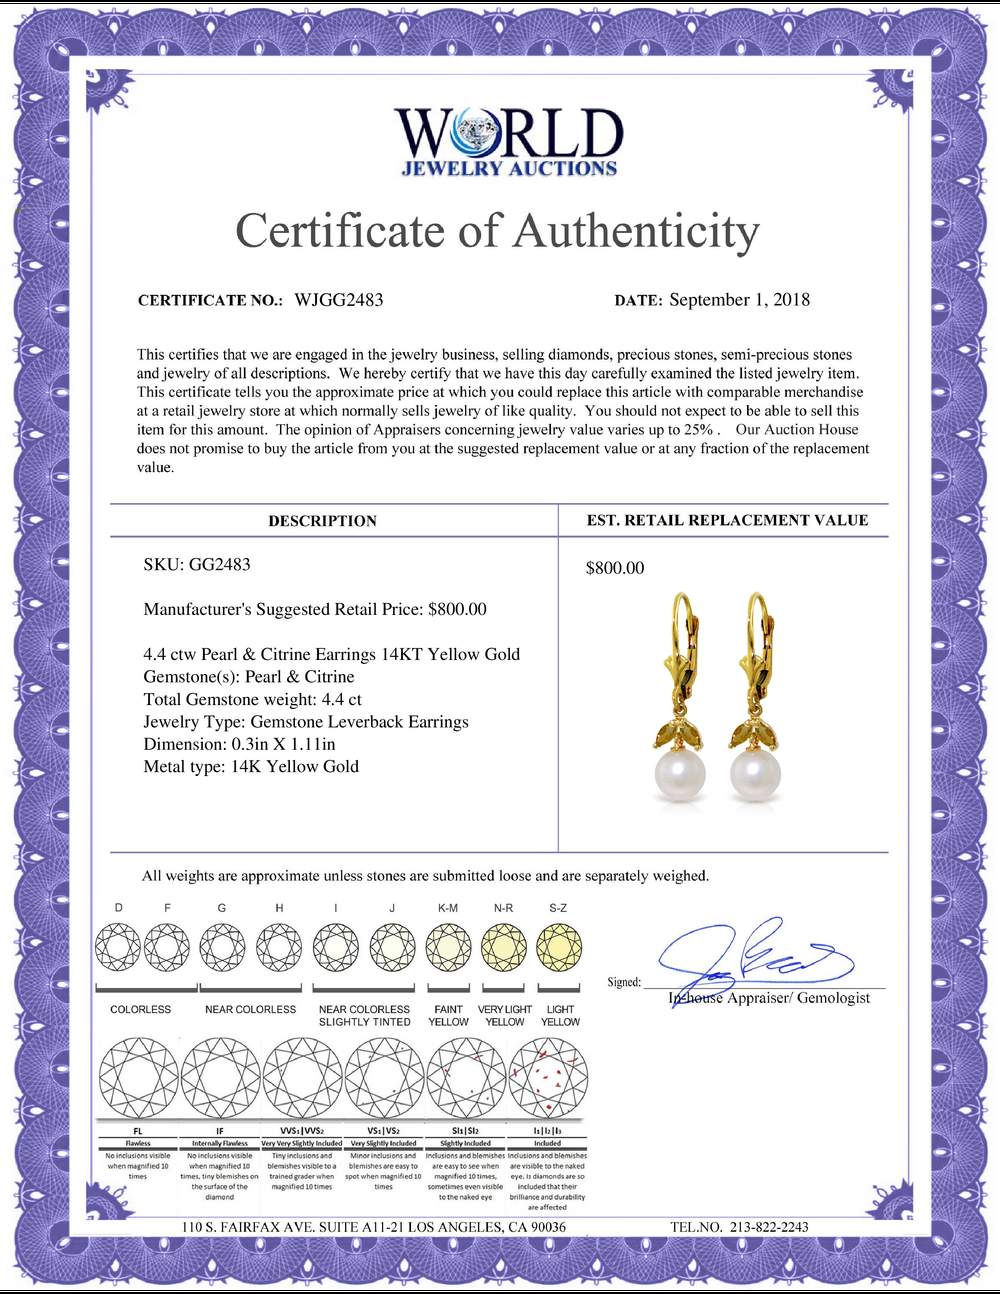 Lot 3062: Genuine 4.4 ctw Pearl & Citrine Earrings Jewelry 14KT Yellow Gold - REF-25H3X